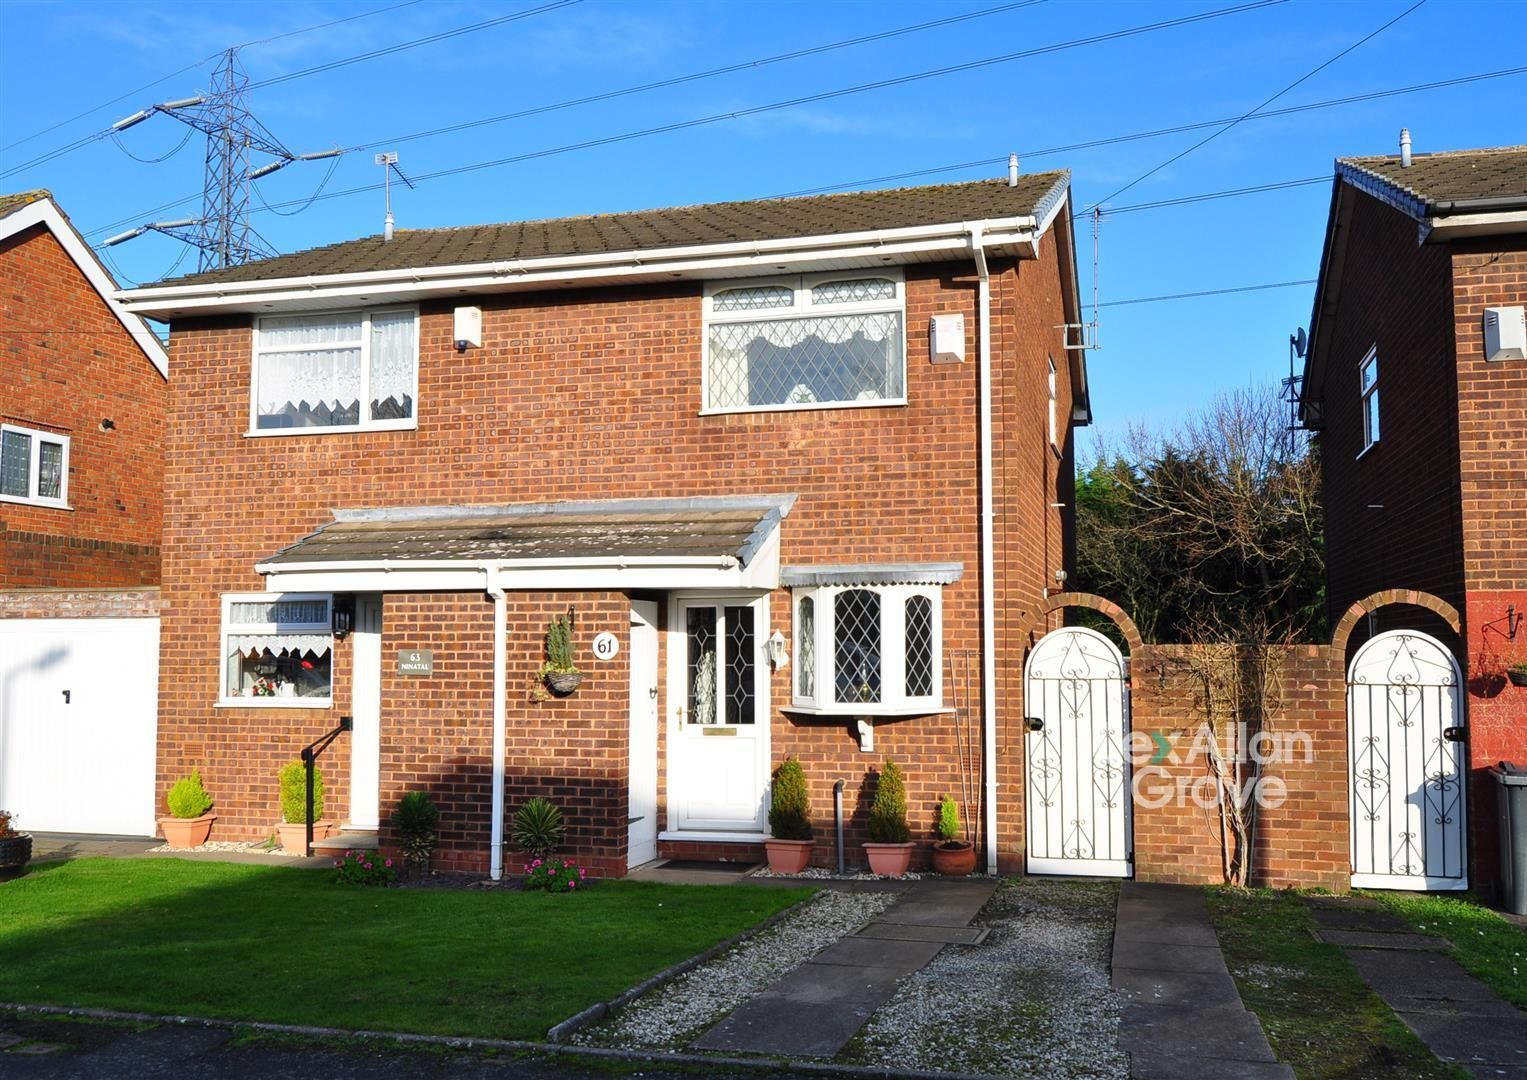 2 bed semi-detached for sale, B69